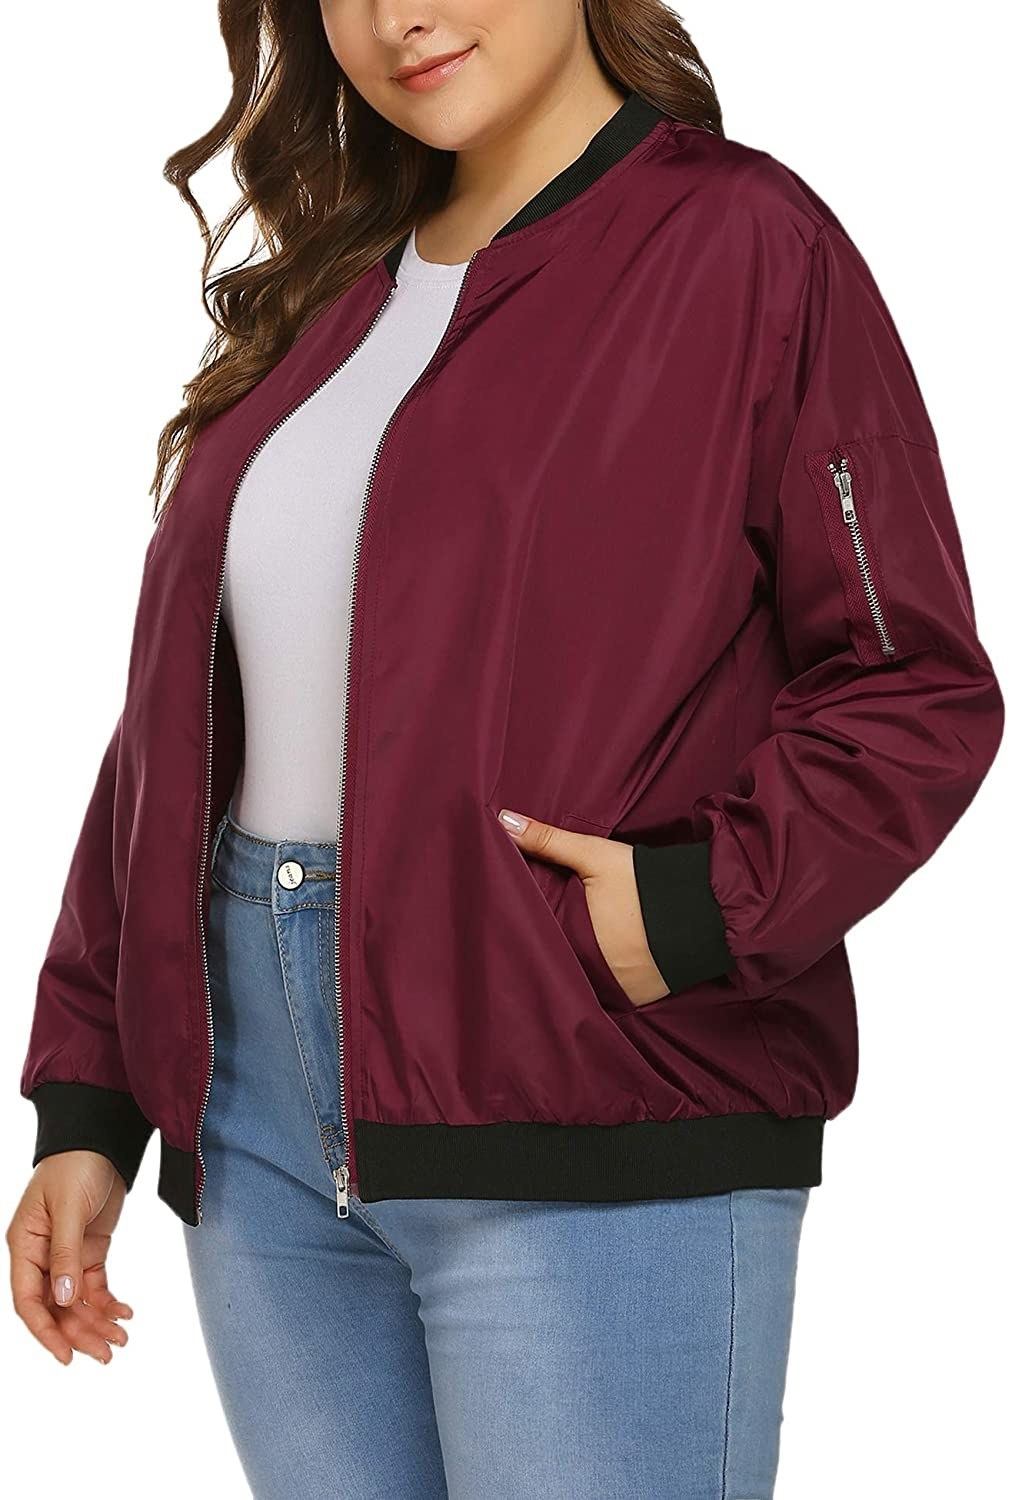 Model in the burgundy jacket with black trim